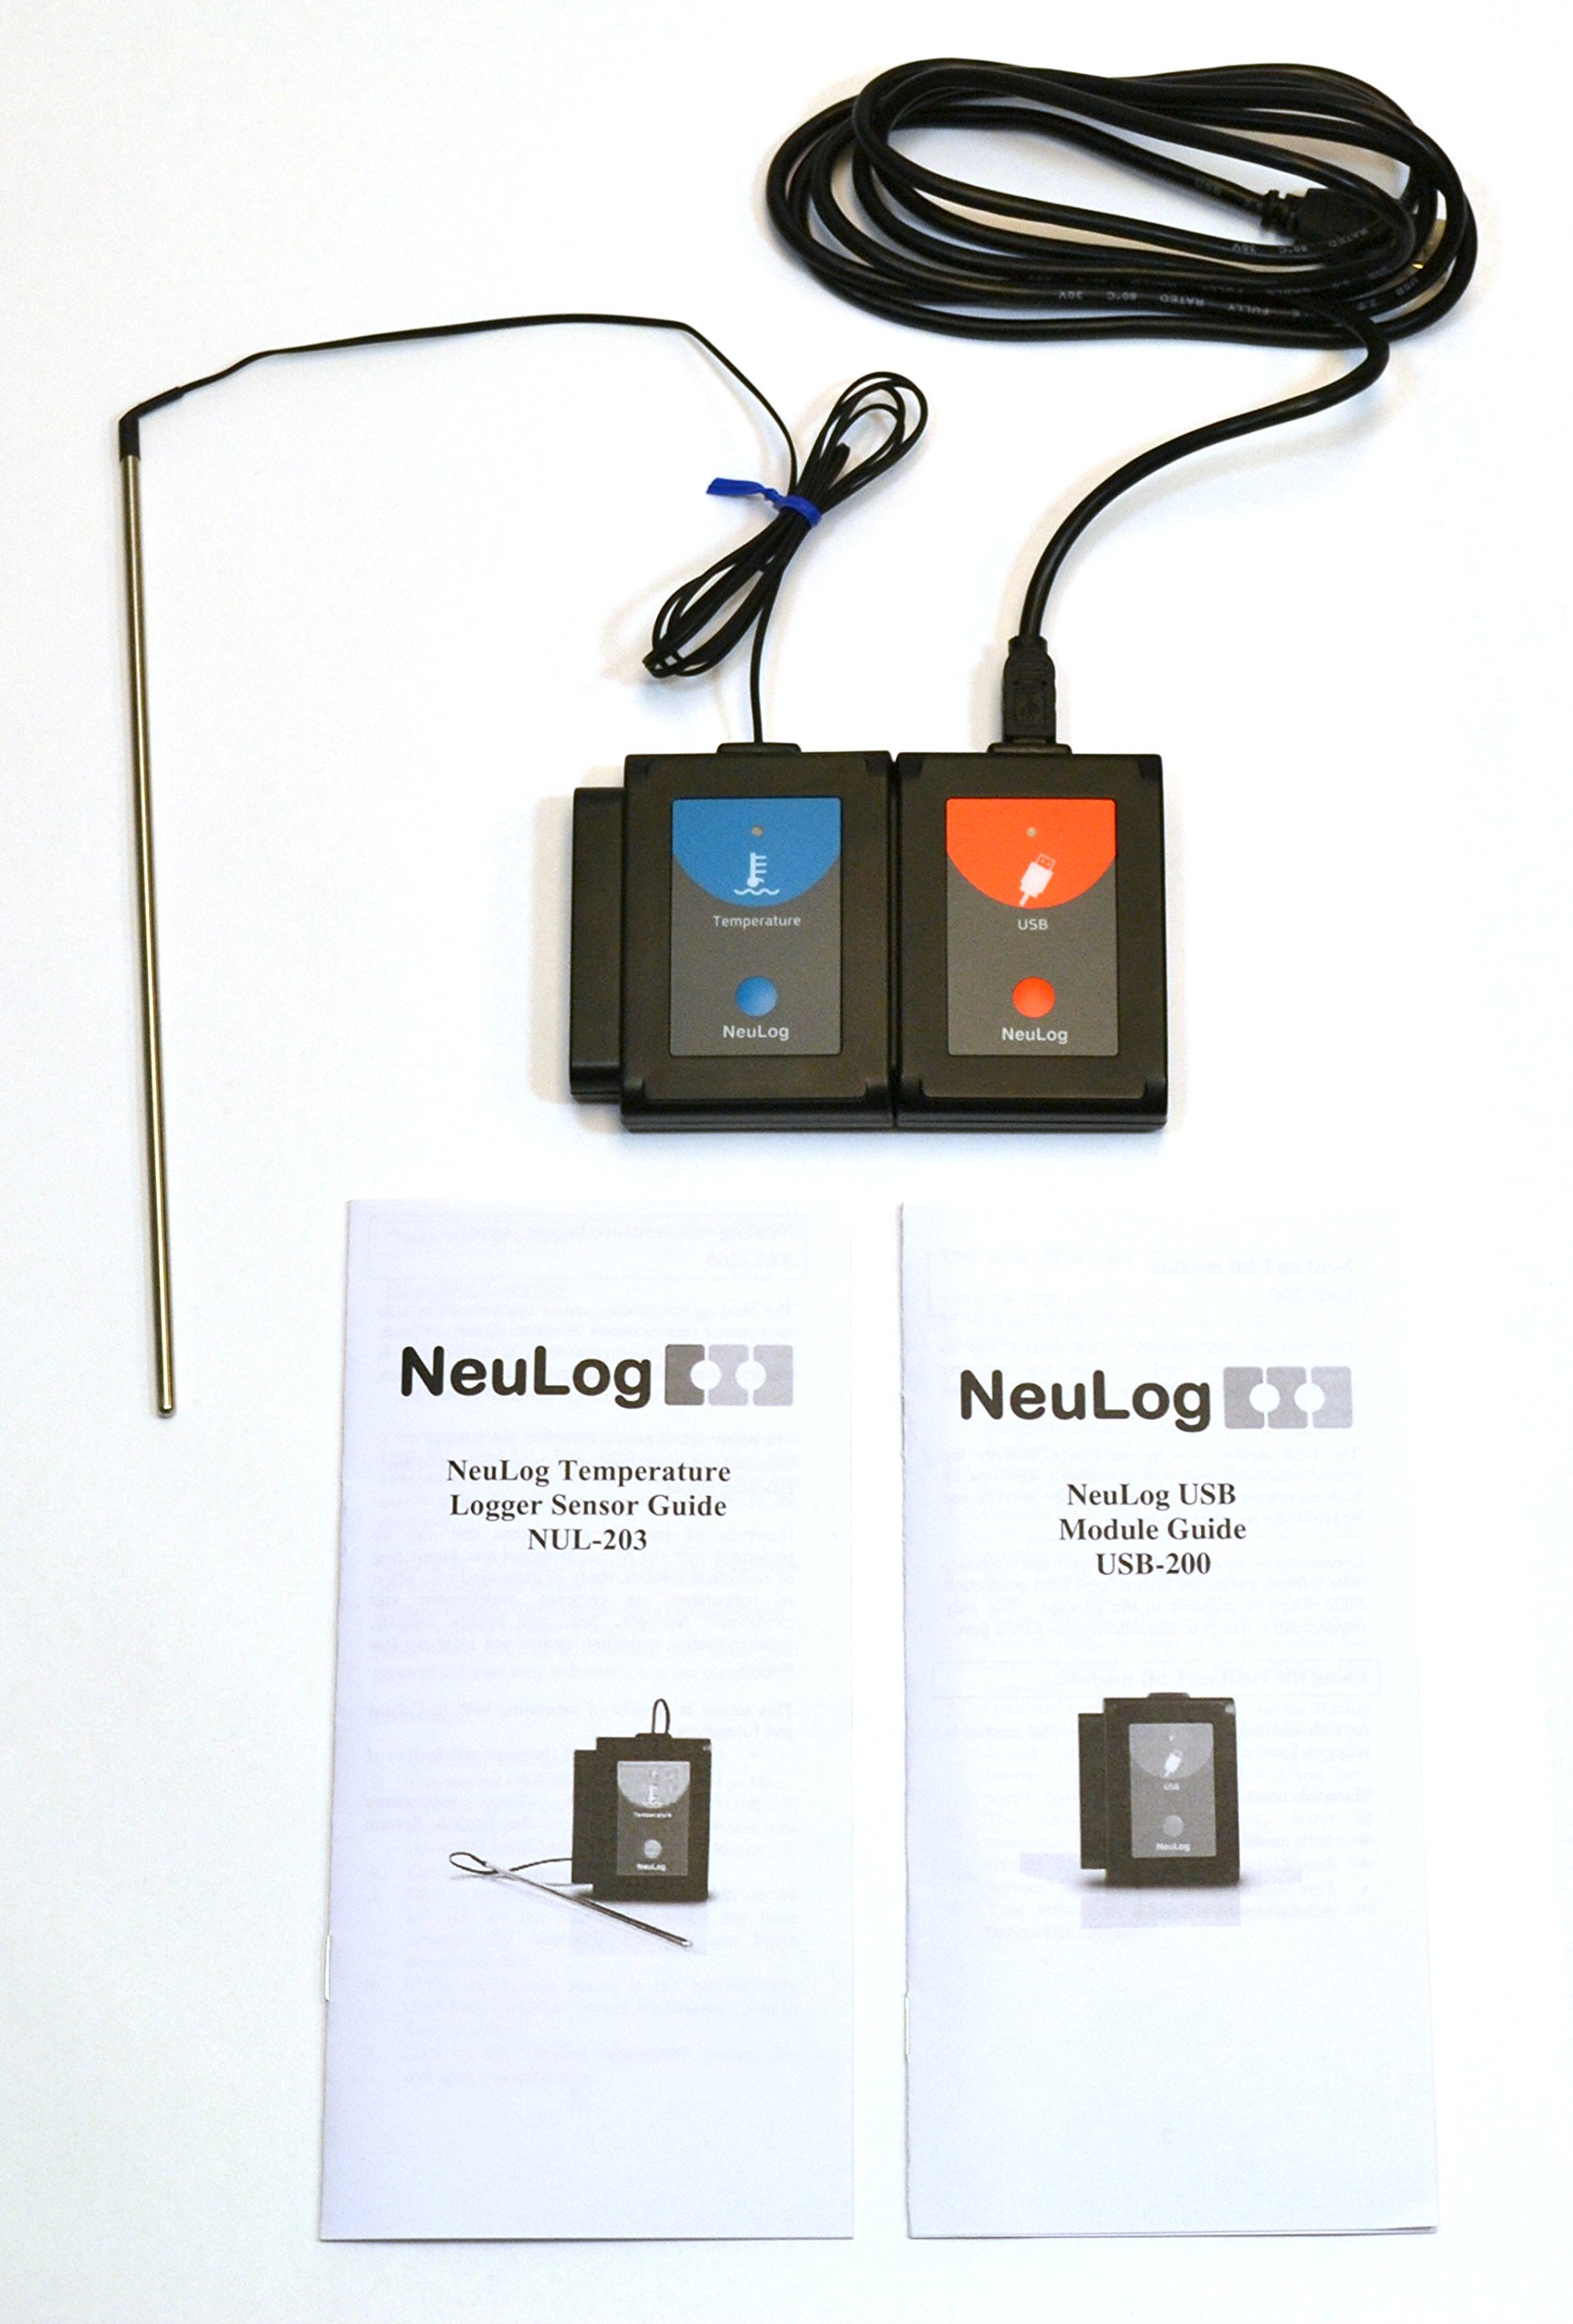 USB TEMPERATURE SENSOR - All connection devices included, software free for download, works with PC or MAC by NEULOG (Image #1)